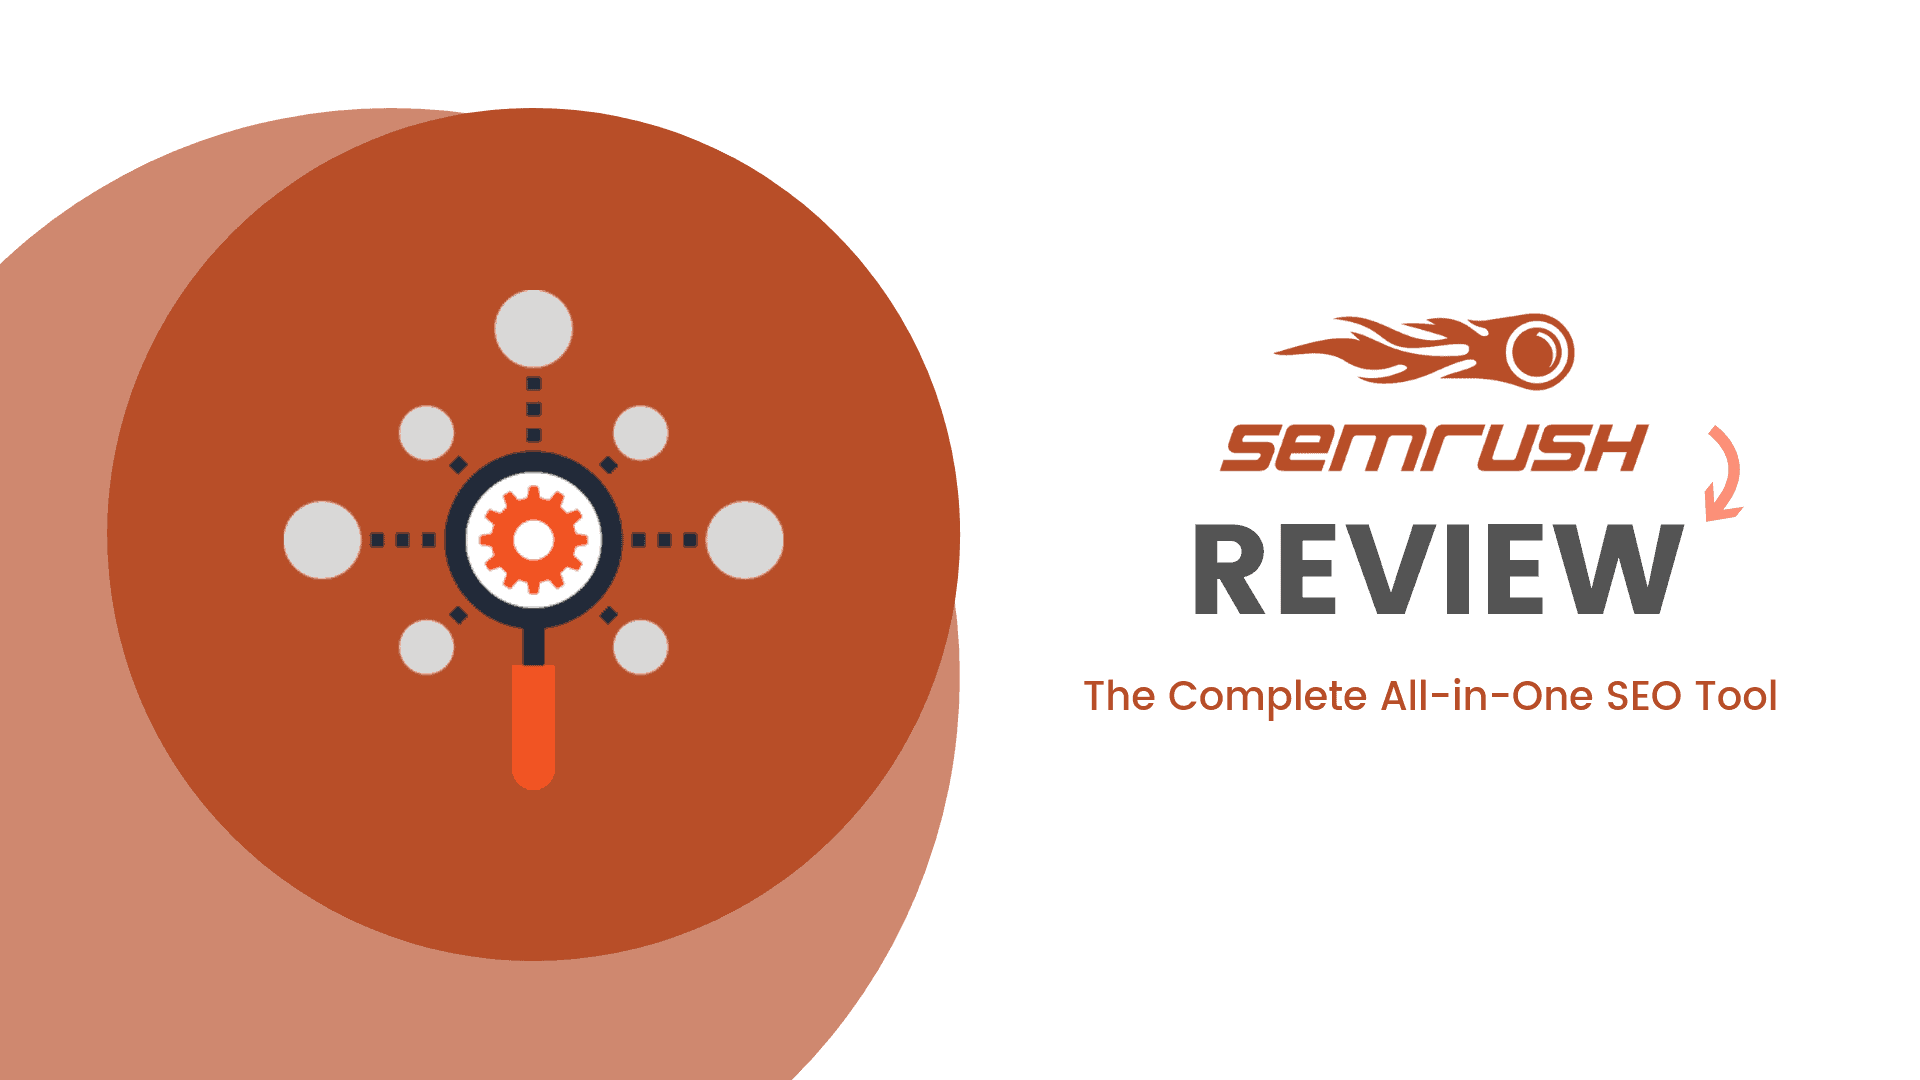 Value Seo Software Semrush